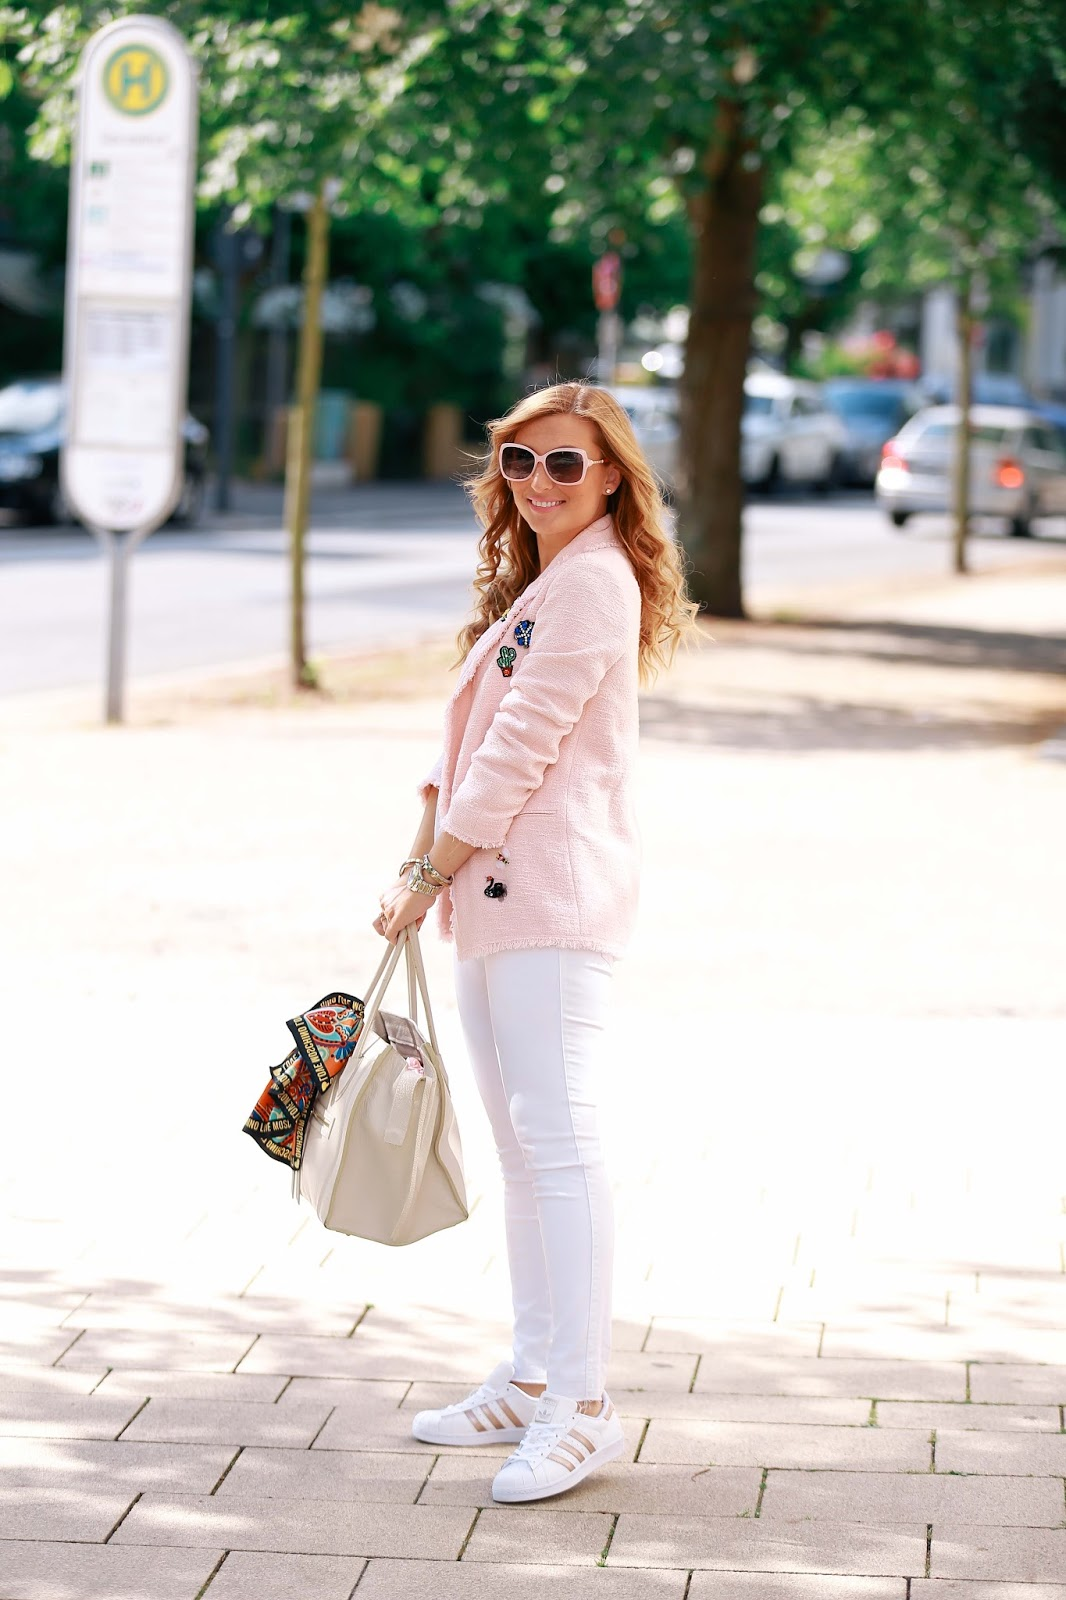 Rosa-blazer-look-like-chanel-coco-chanel-look-fashionblogger